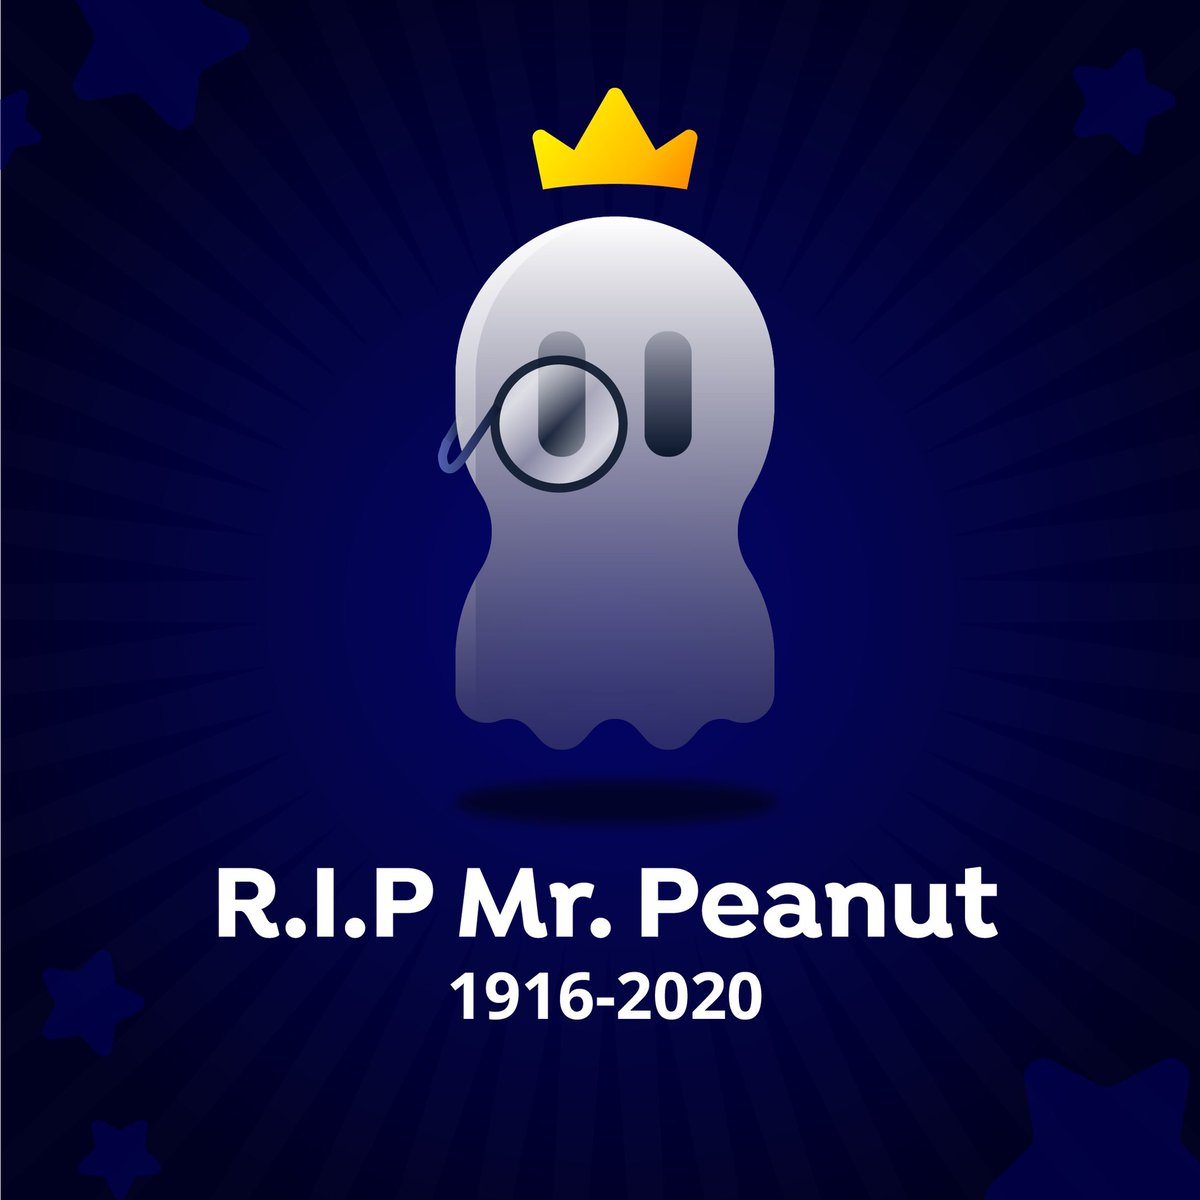 Our deepest condolences to the family of @MrPeanut we truly lost a good one! #RIPMrPeanut #rippeanut